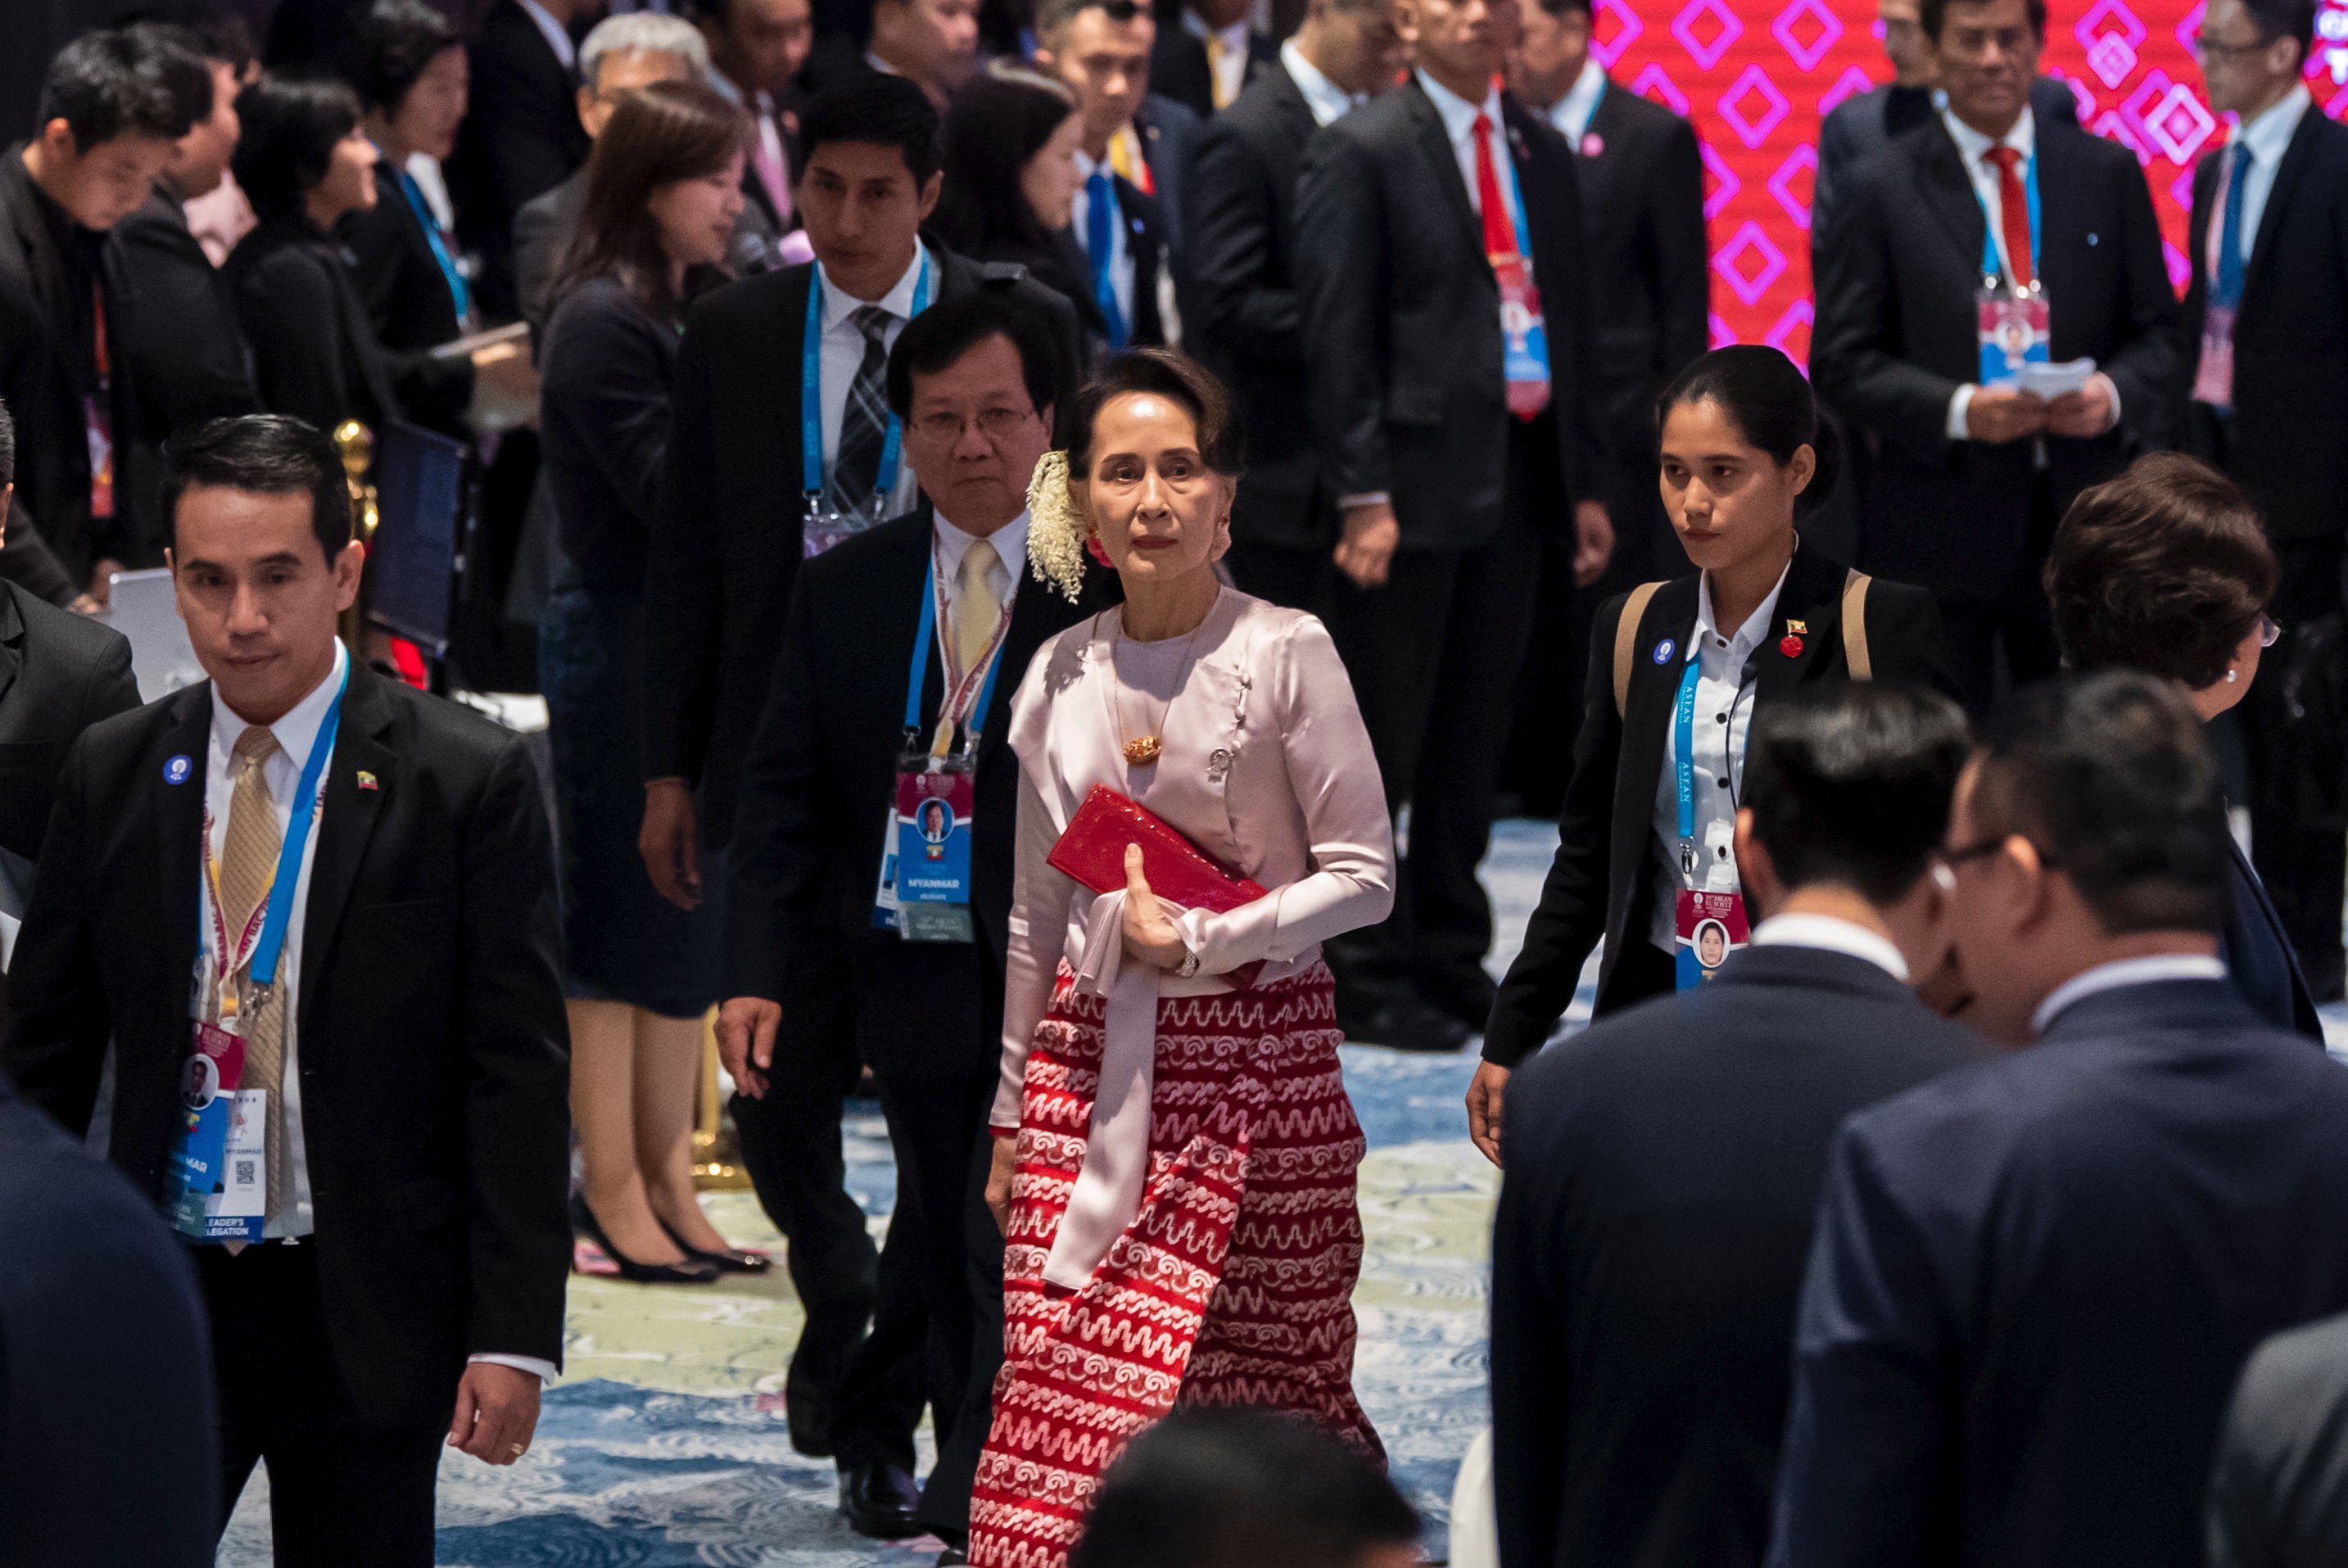 New corruption charges levelled against Suu Kyi